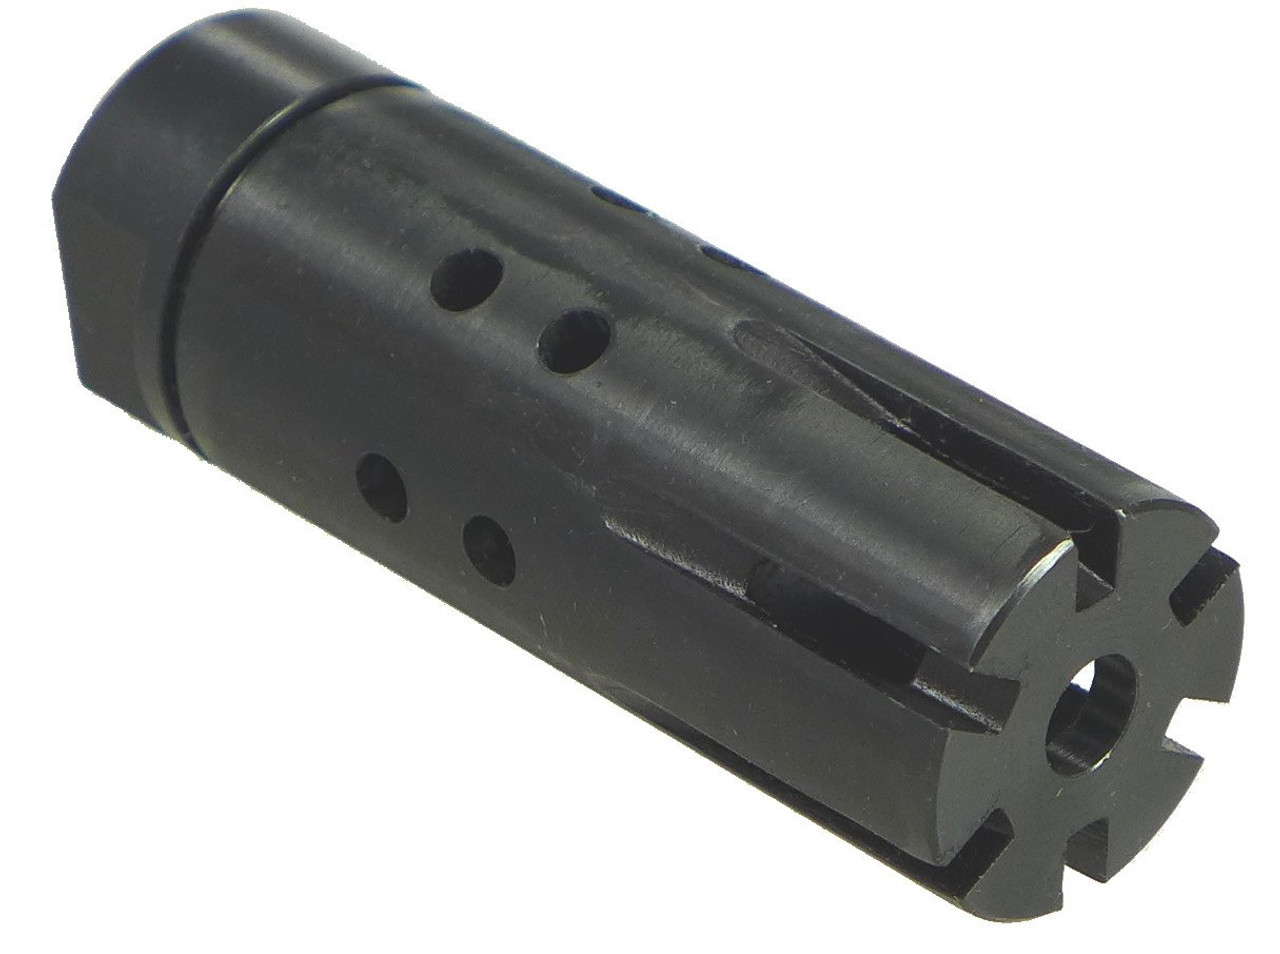 Two piece Muzzle Brake with adapter 13/16-16 To Thread 1/2